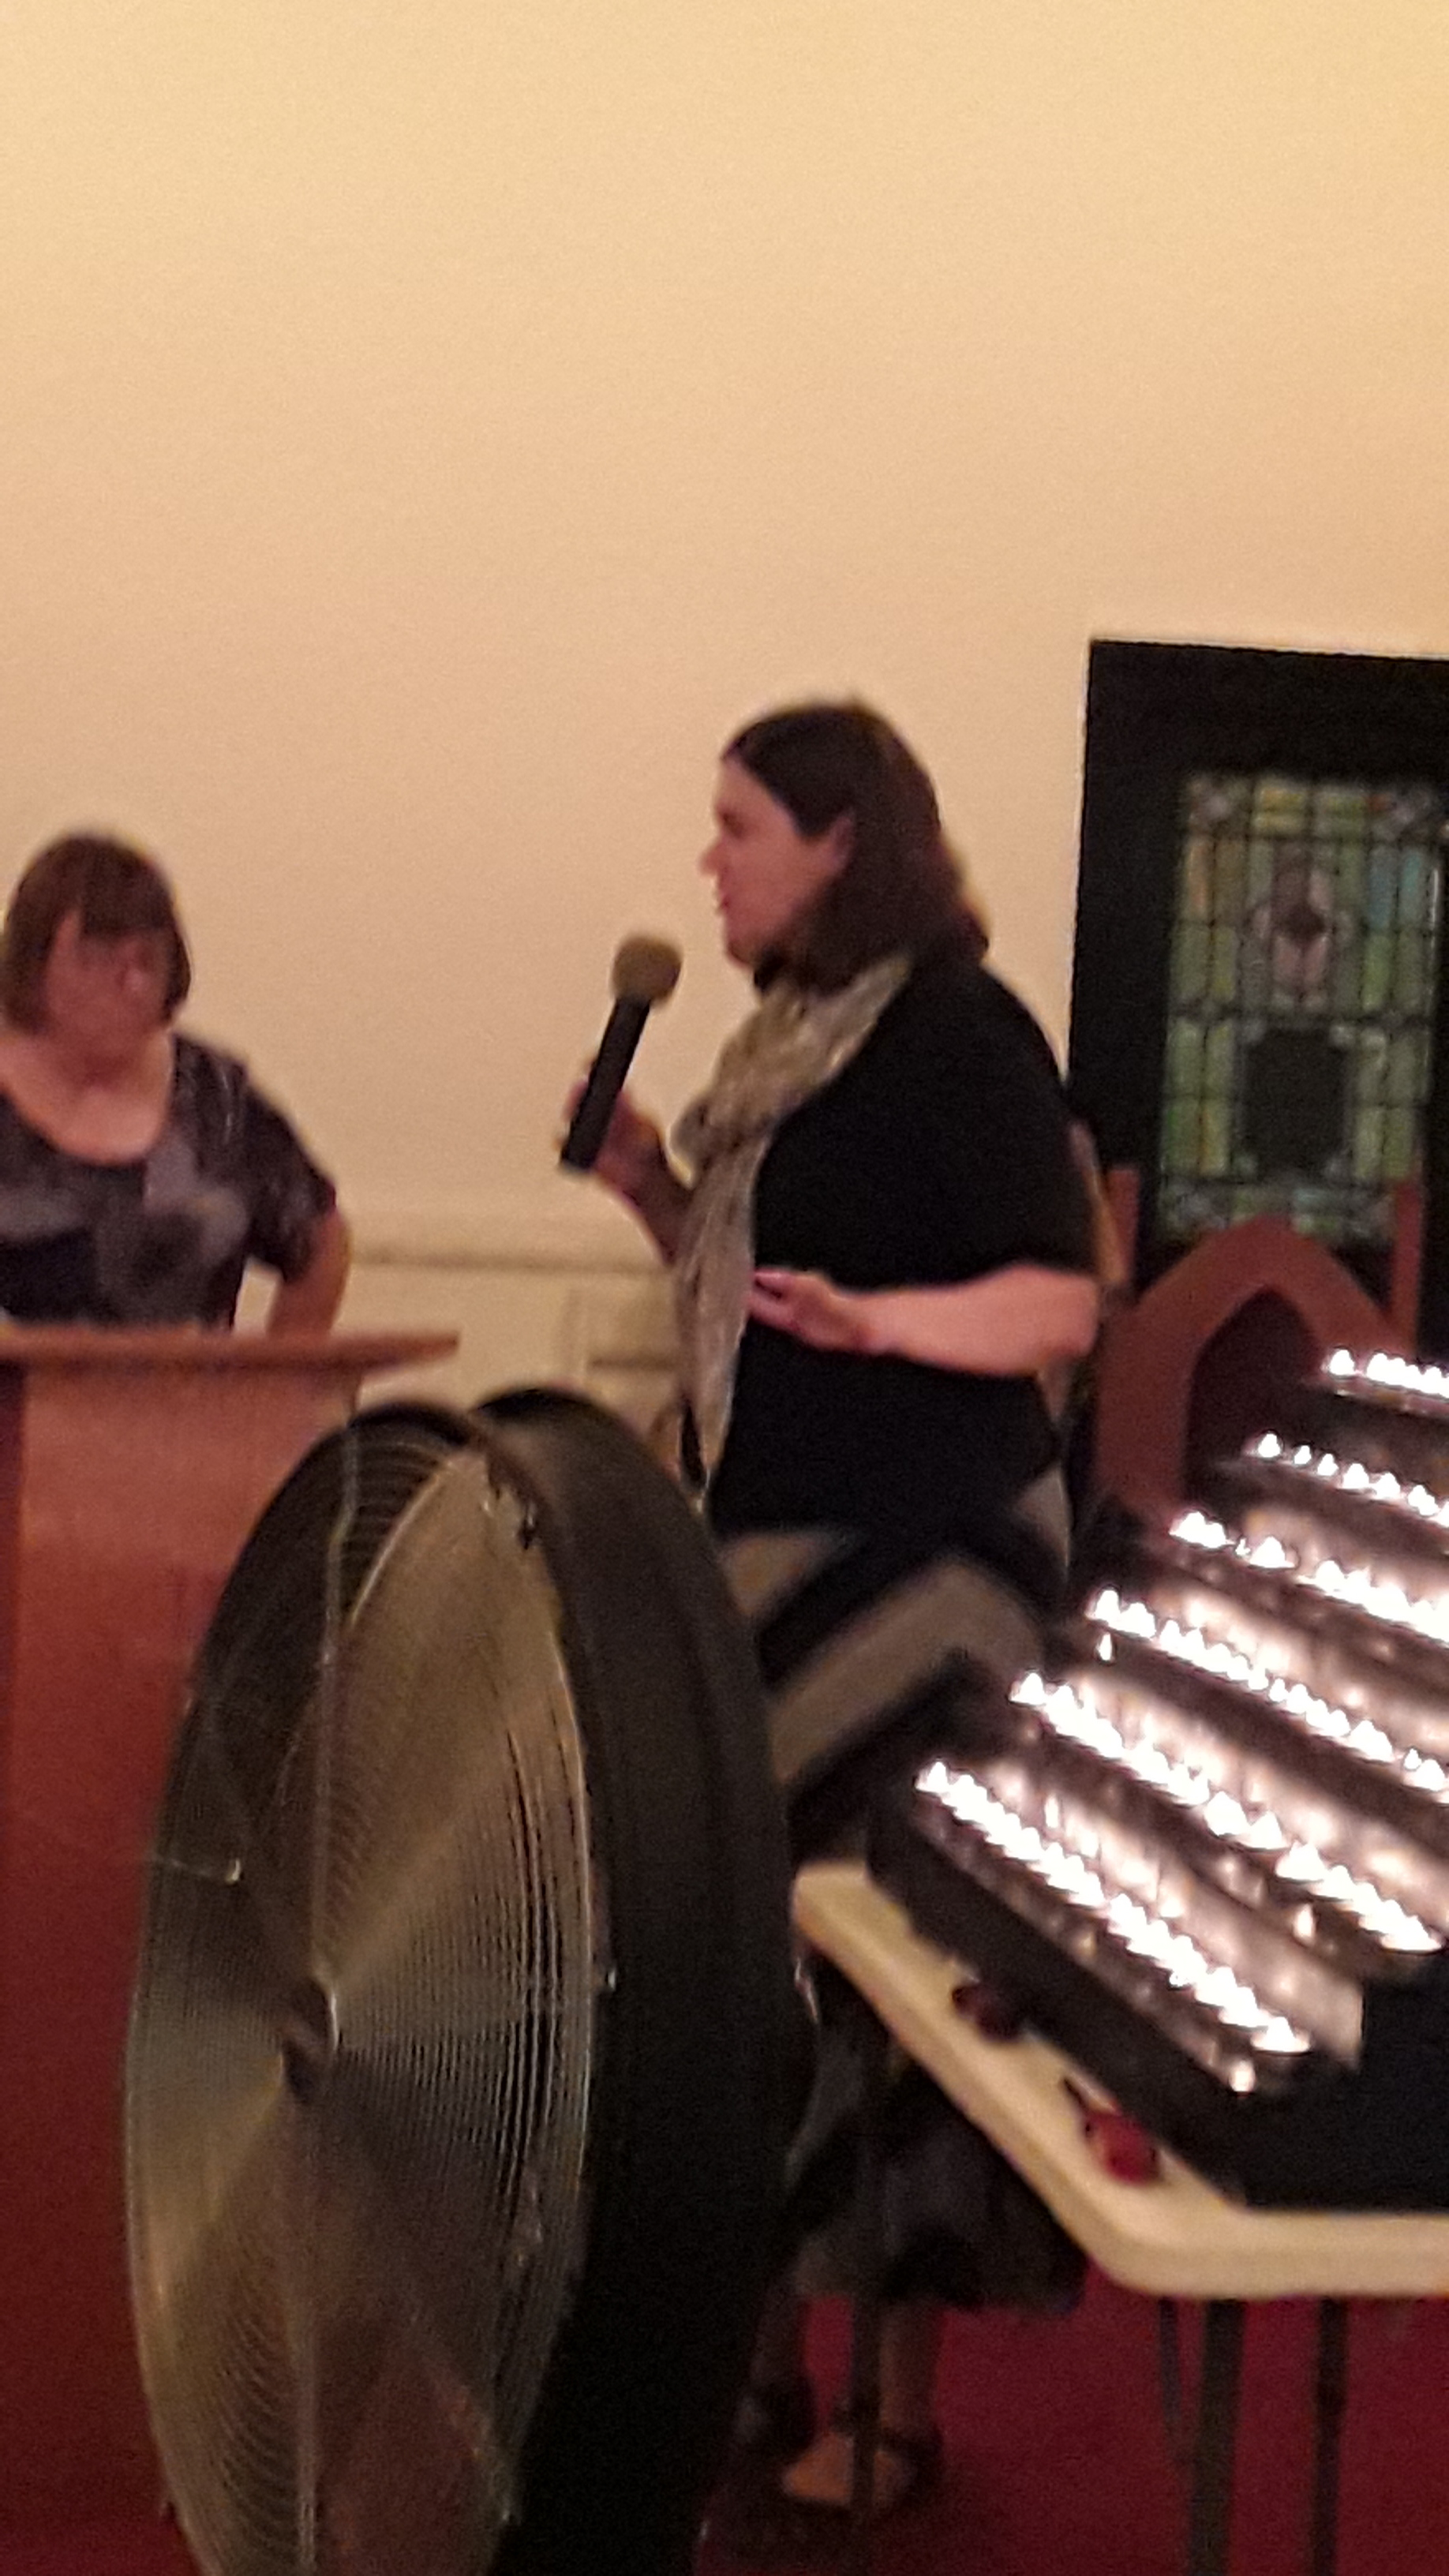 A white woman with a microphone speaks in front of a display of candles.